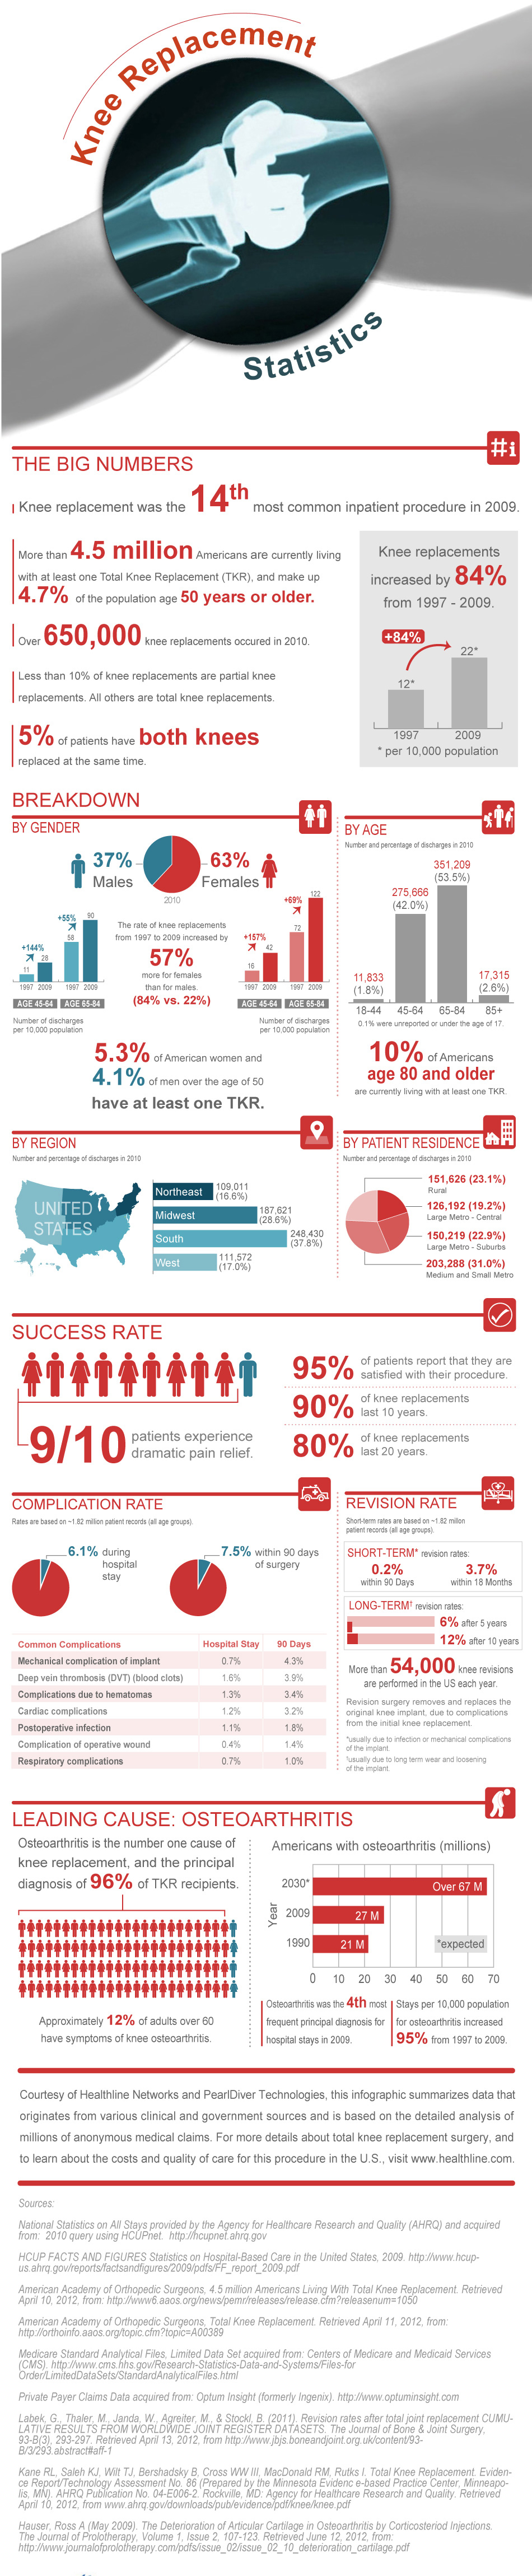 Knee Replacement Statistics Infographic